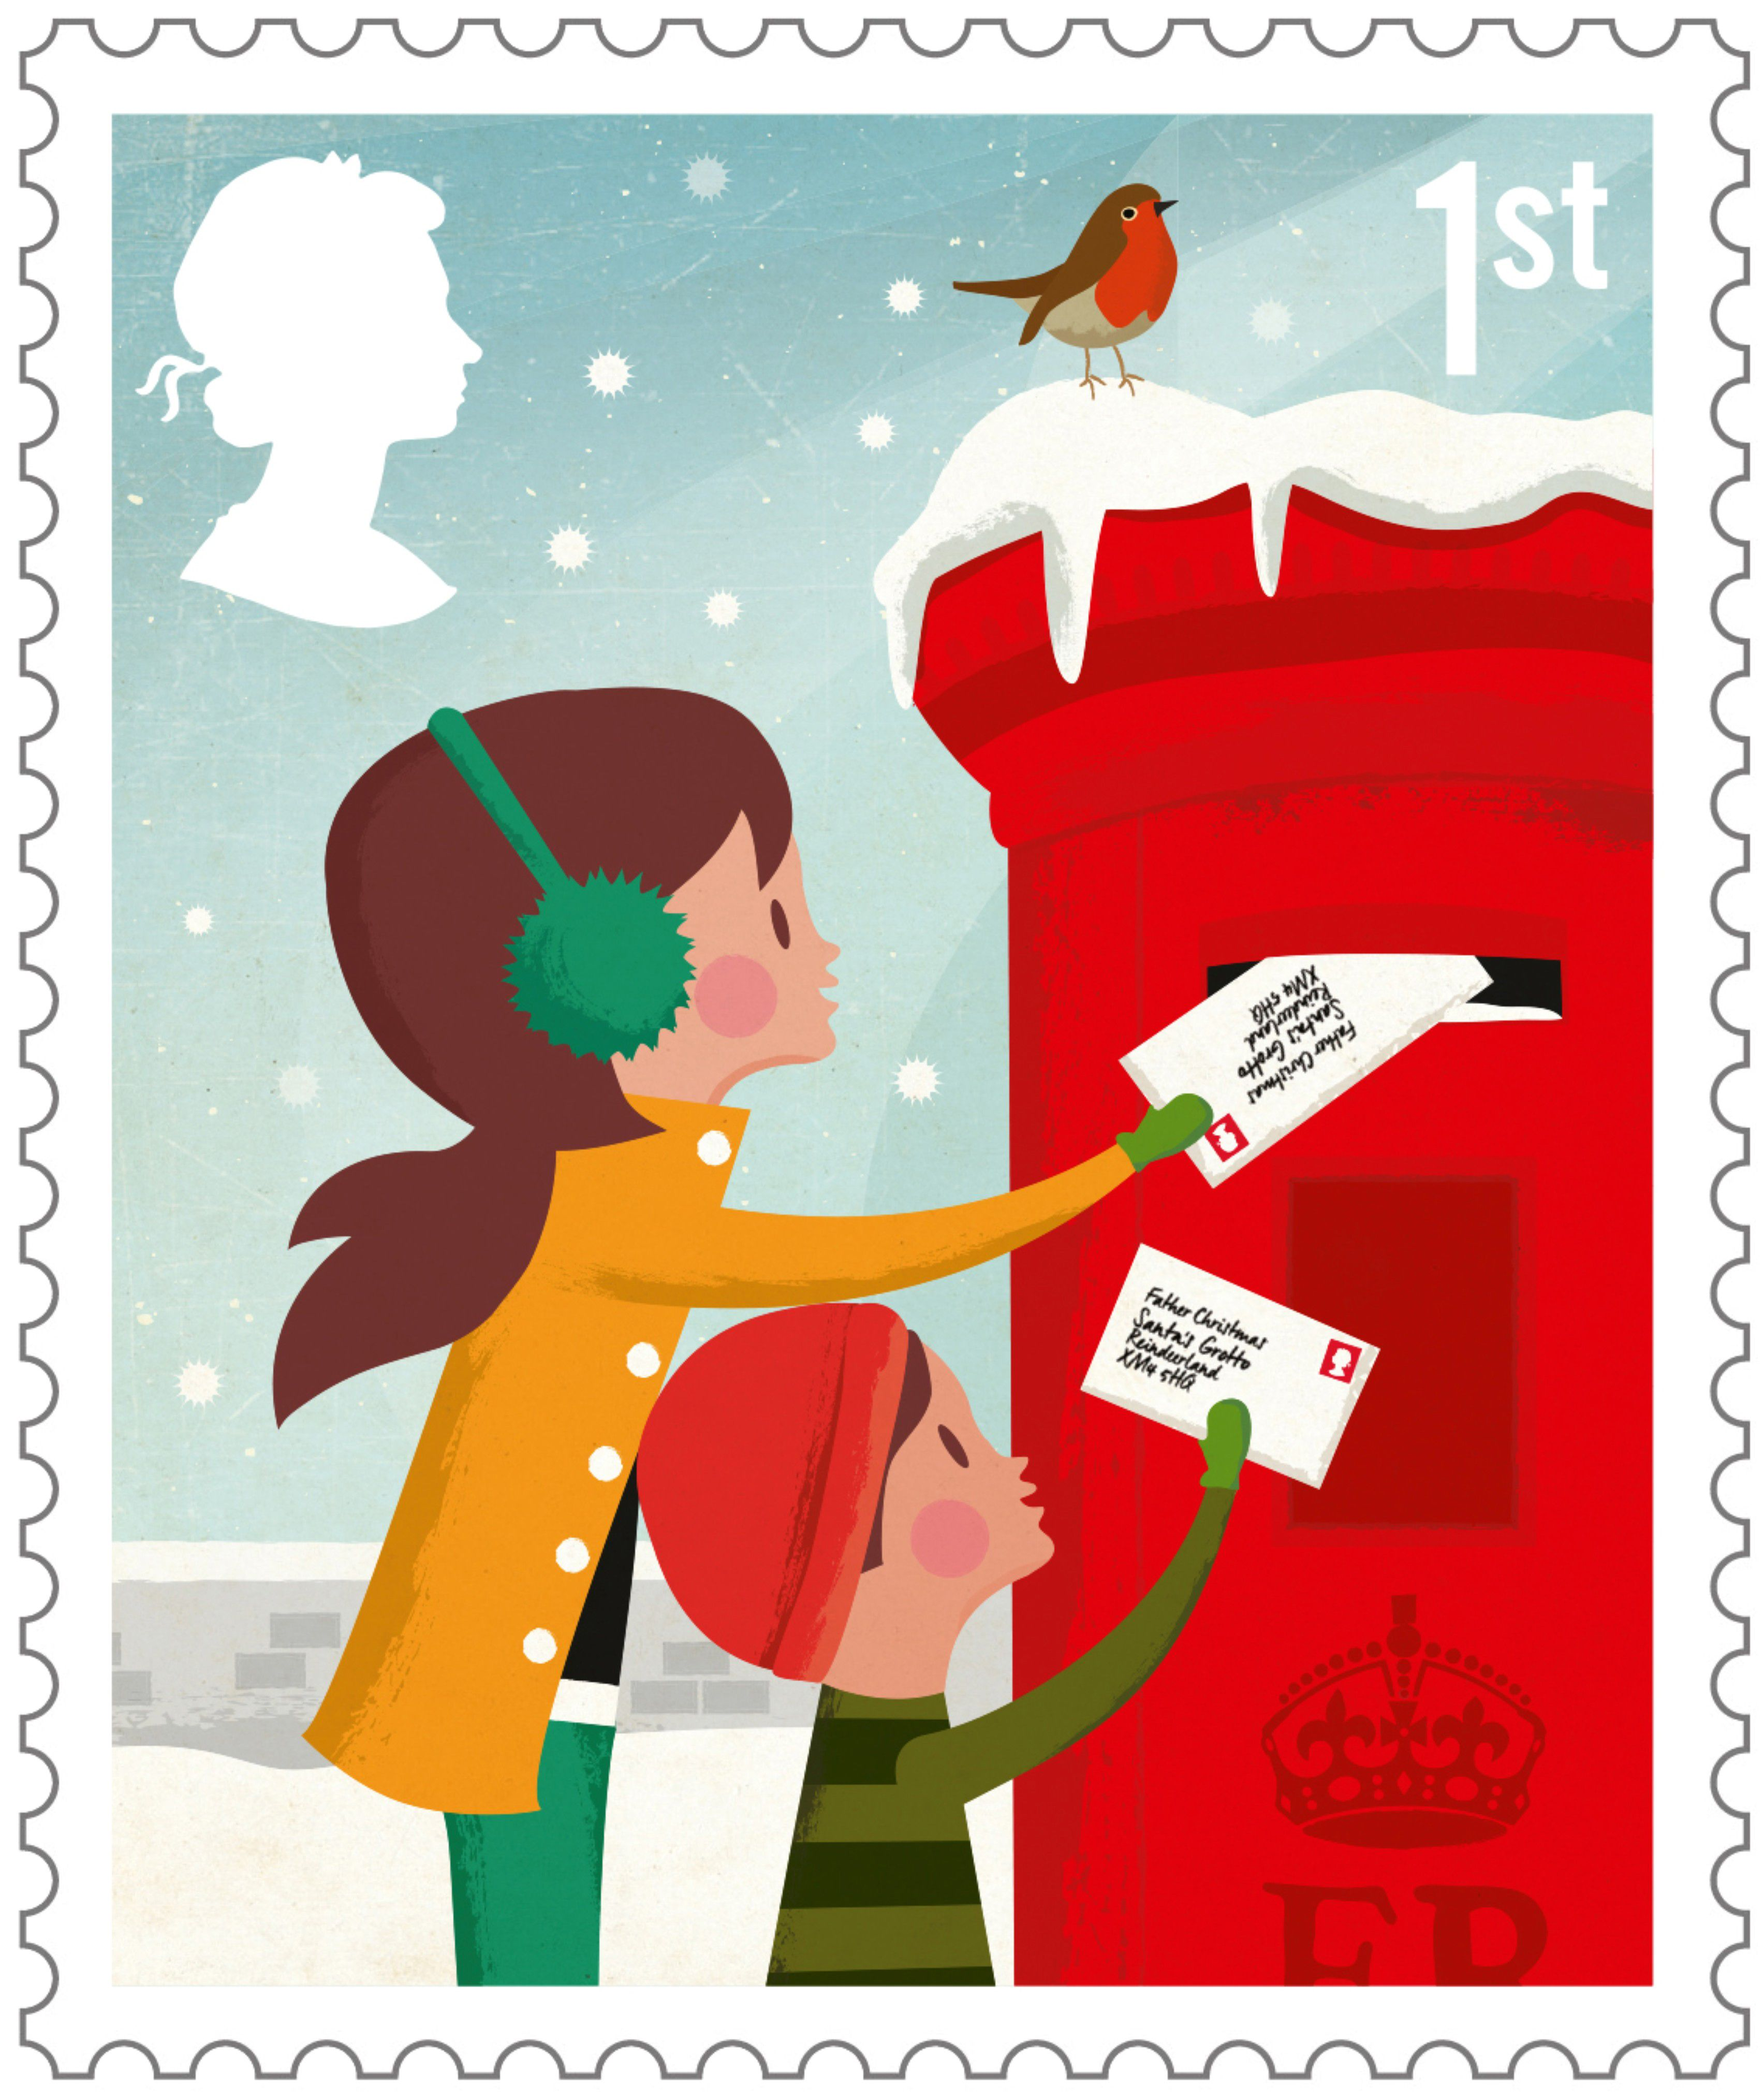 Mailing chrsitmas cards clipart picture transparent stock christmas postage stamps vintage royal mail - Google Search ... picture transparent stock